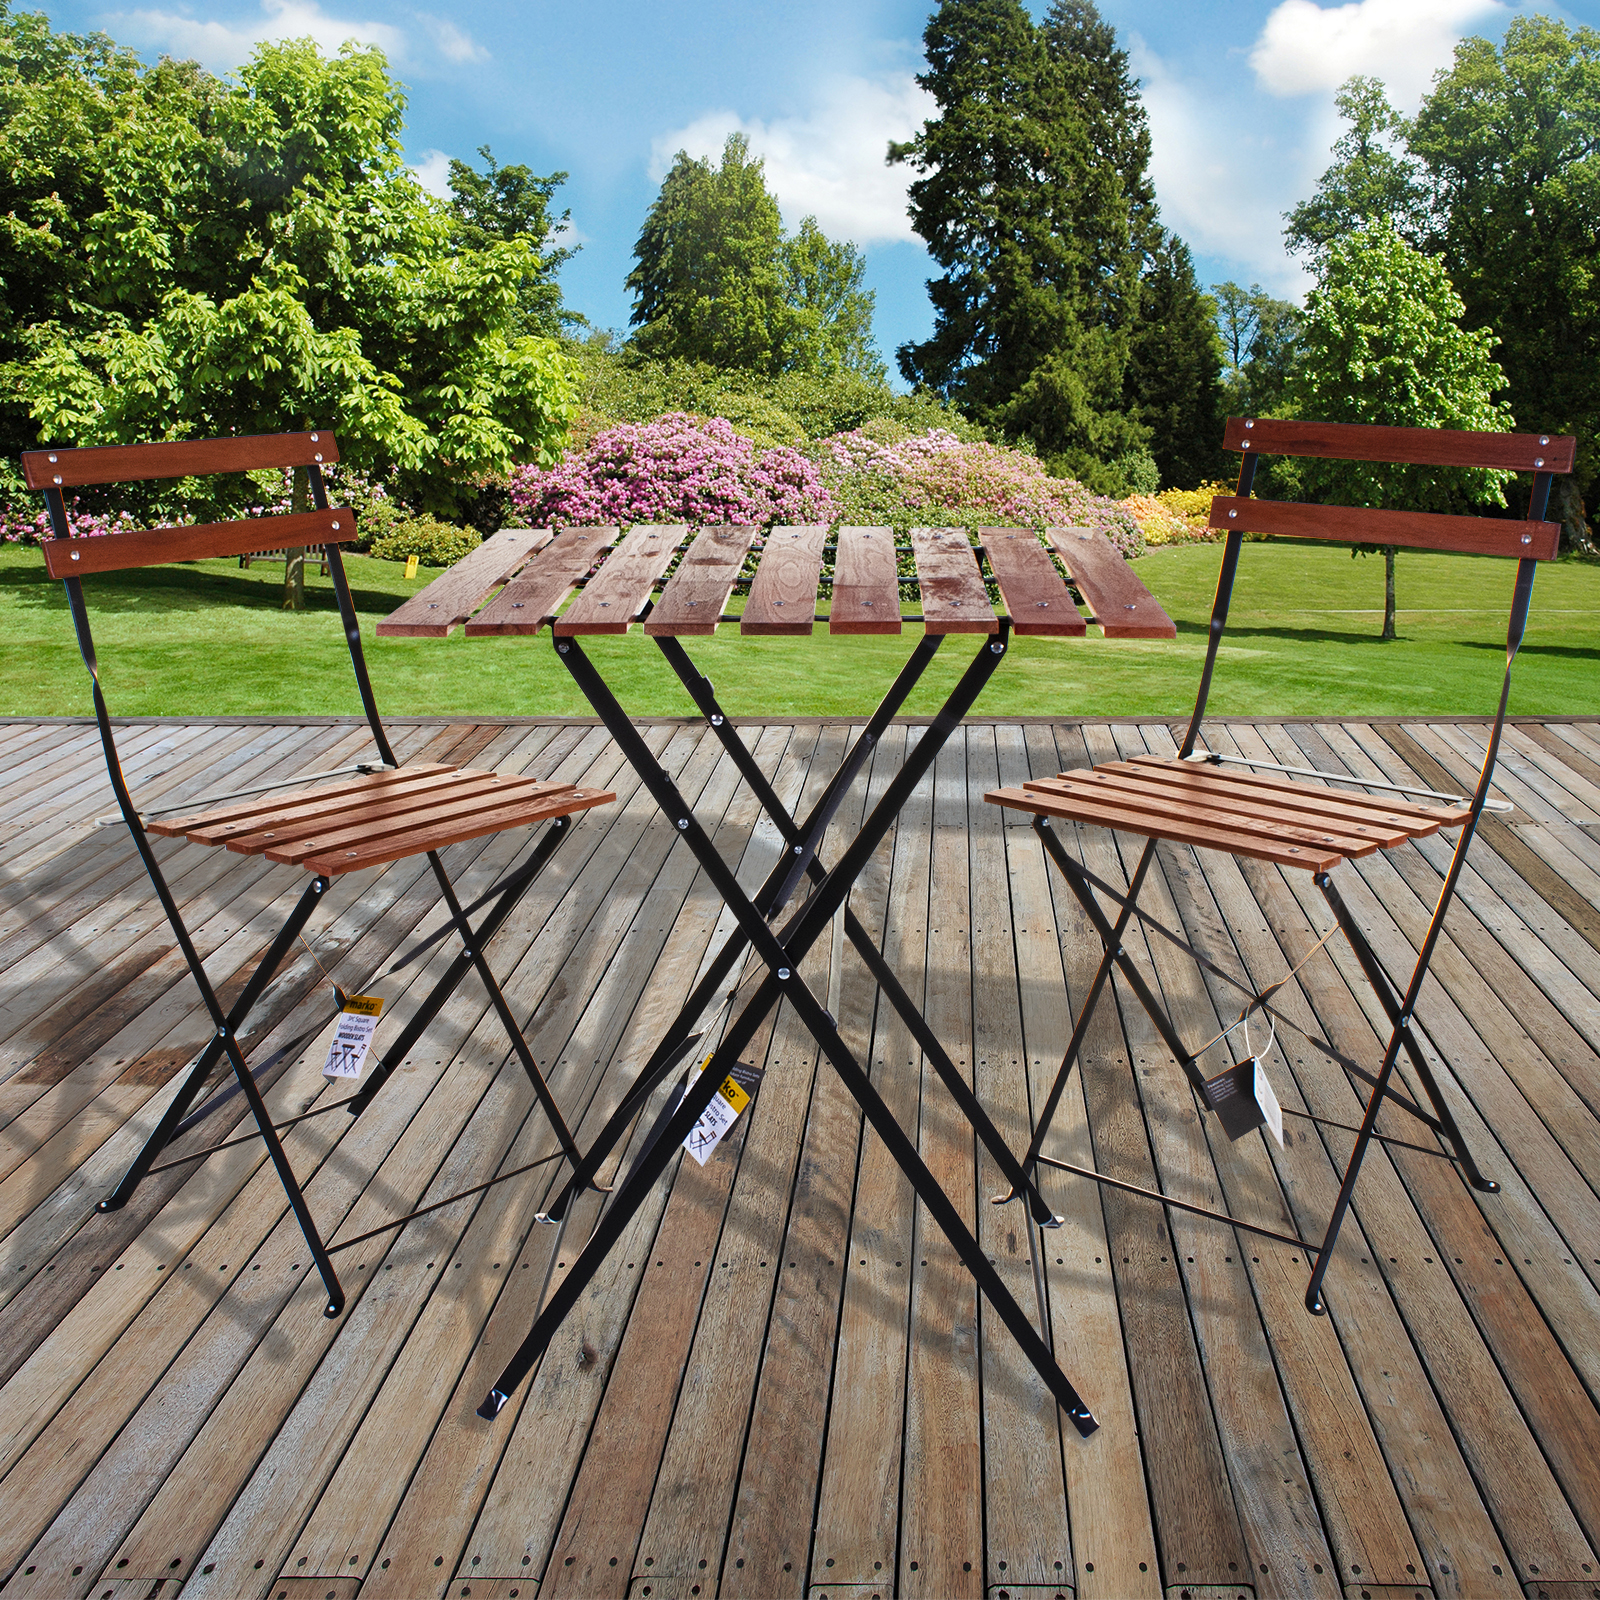 Details About 3pc Bistro Set Metal Wood Slat Folding Outdoor Furniture Square Table Chairs